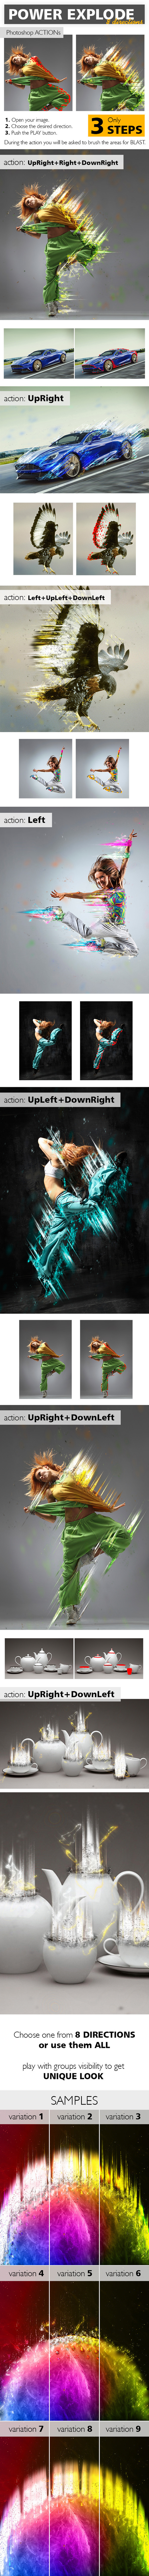 GraphicRiver Power Explode Photoshop Action 10706970